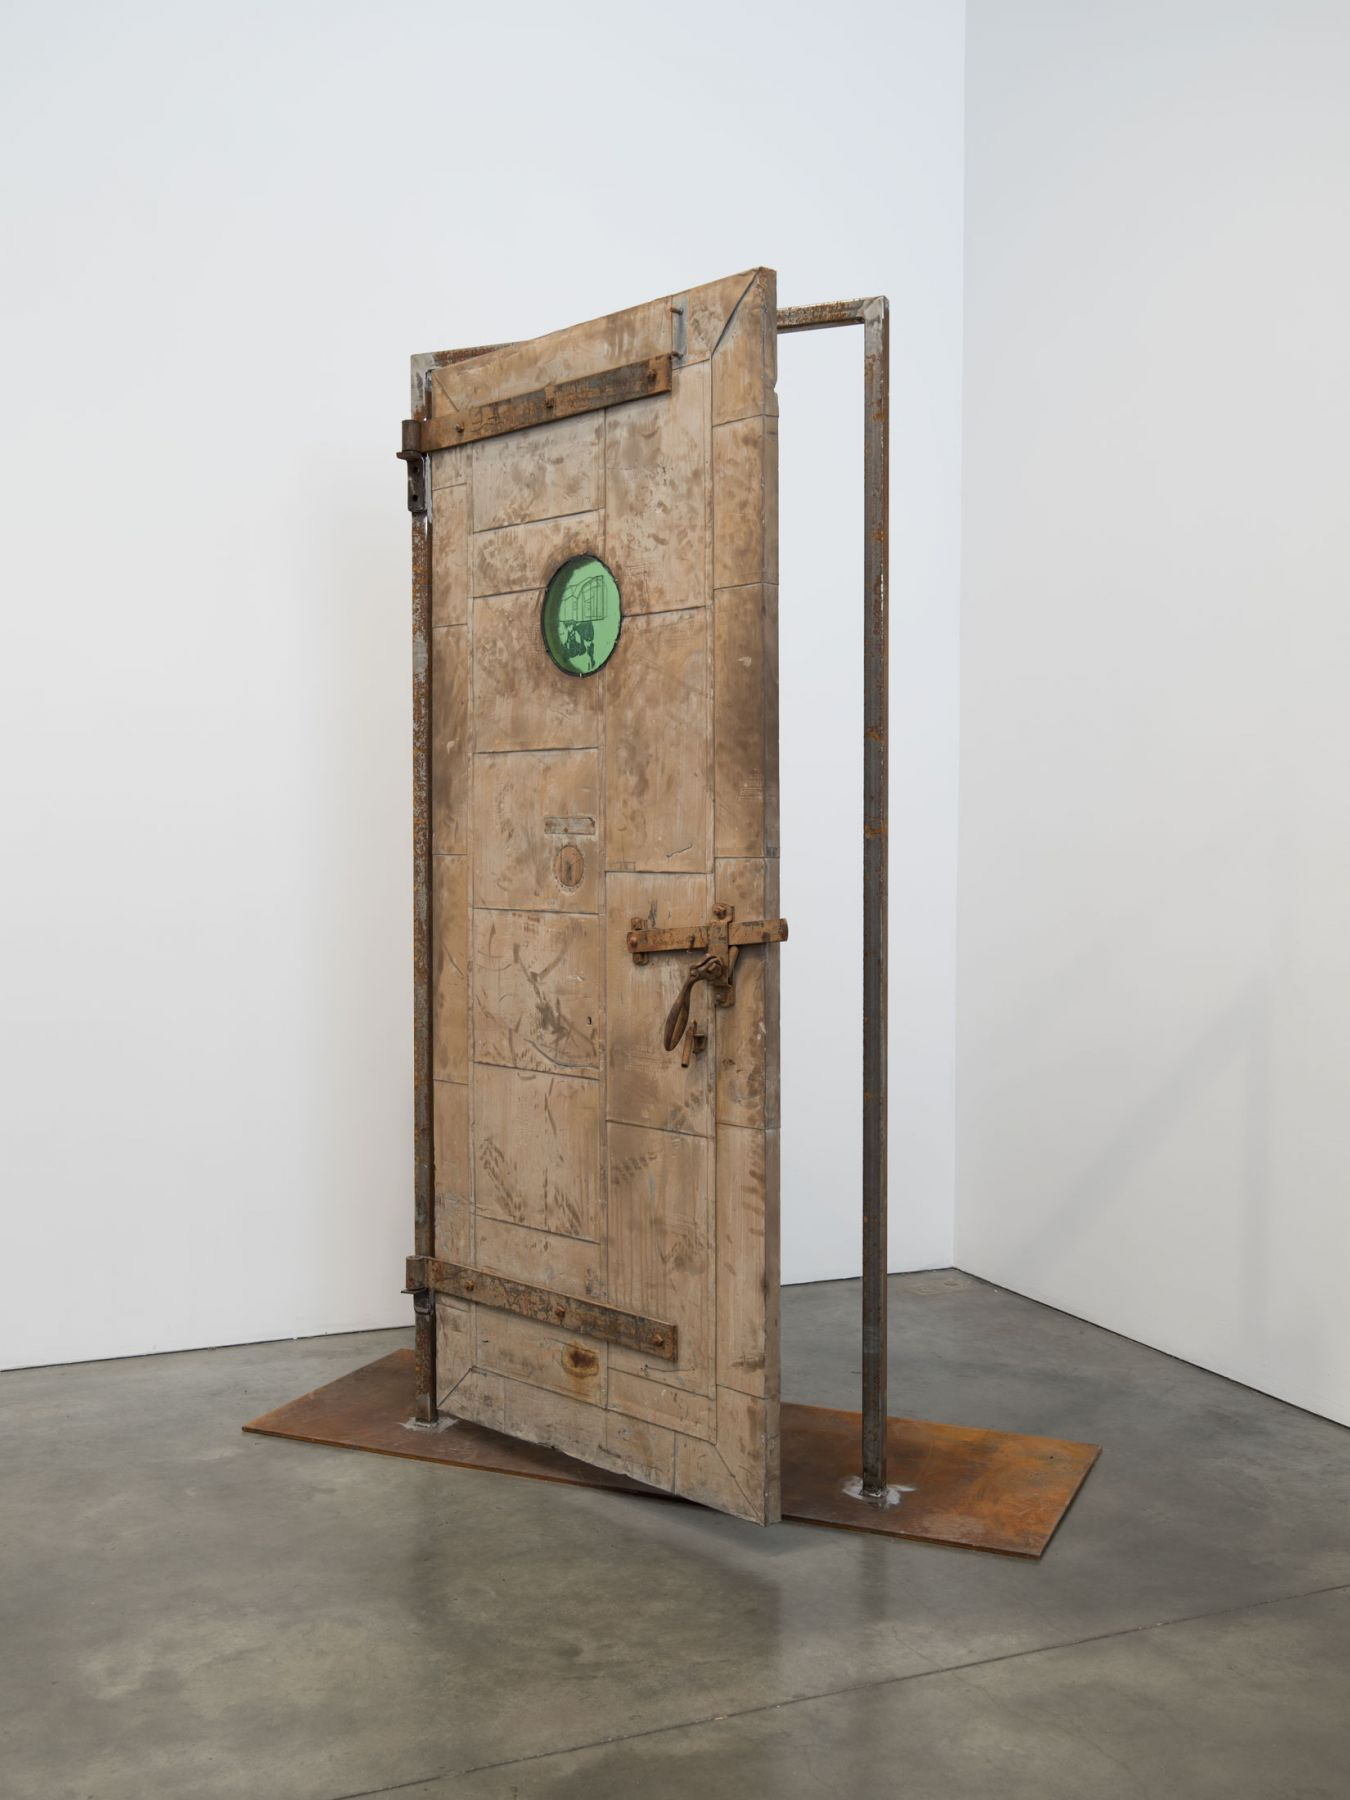 Oscar Tuazon, Fire Door, 2018